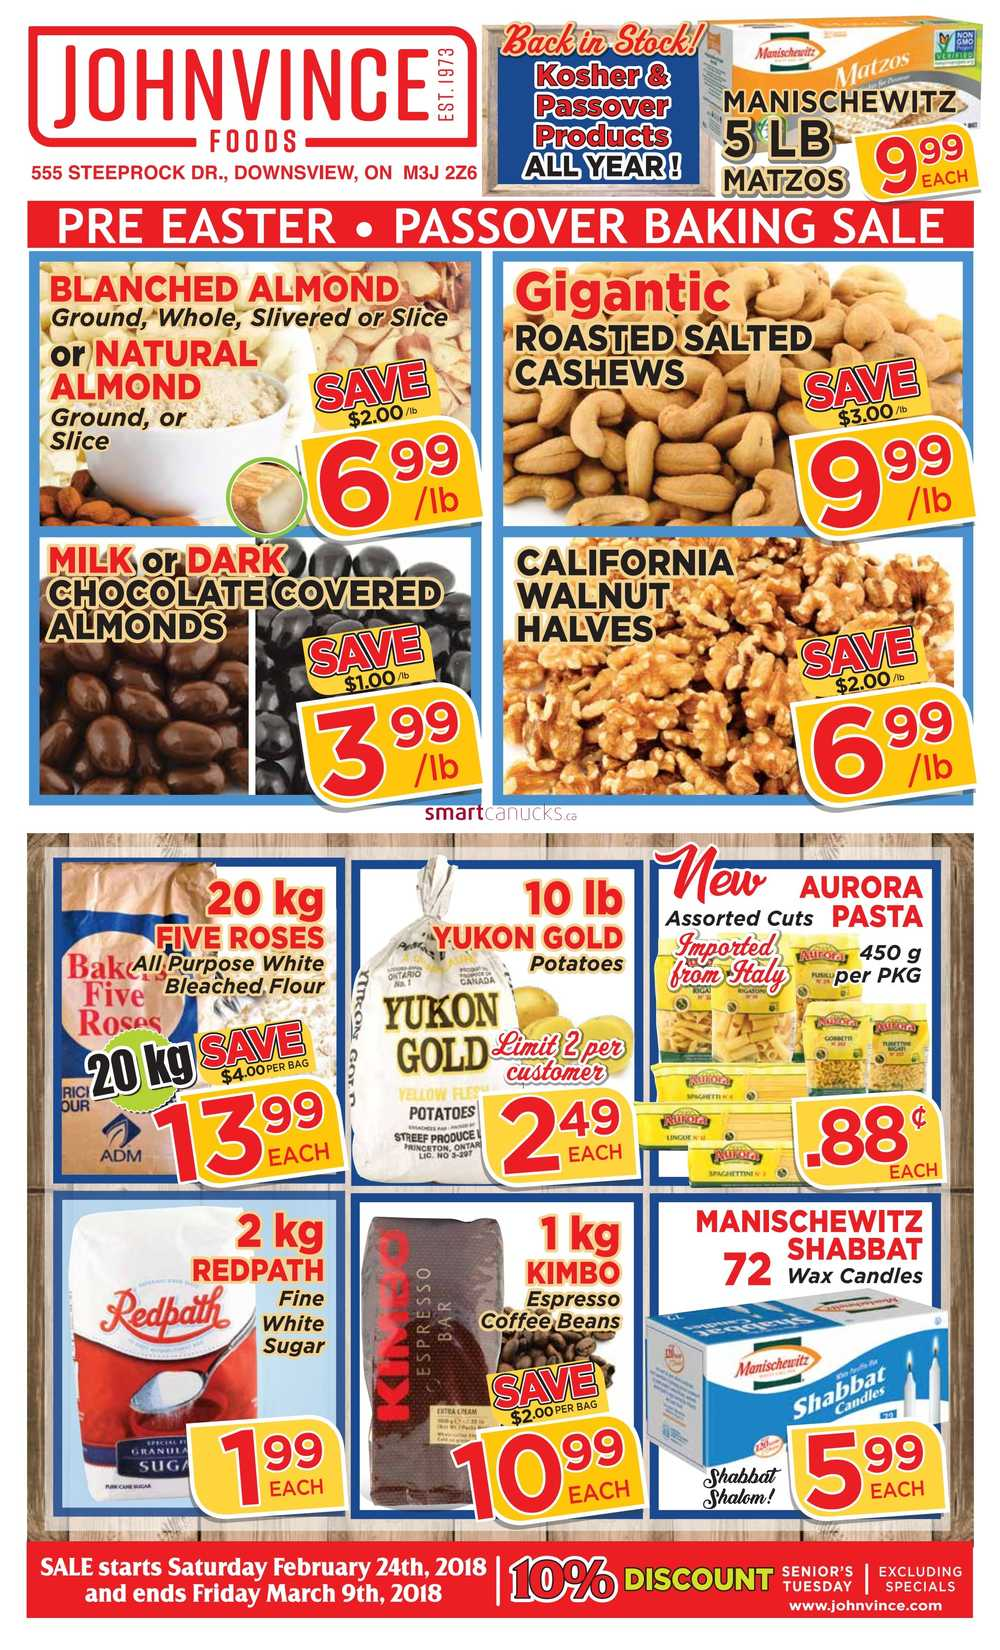 Johnvince Foods Canada Flyers on